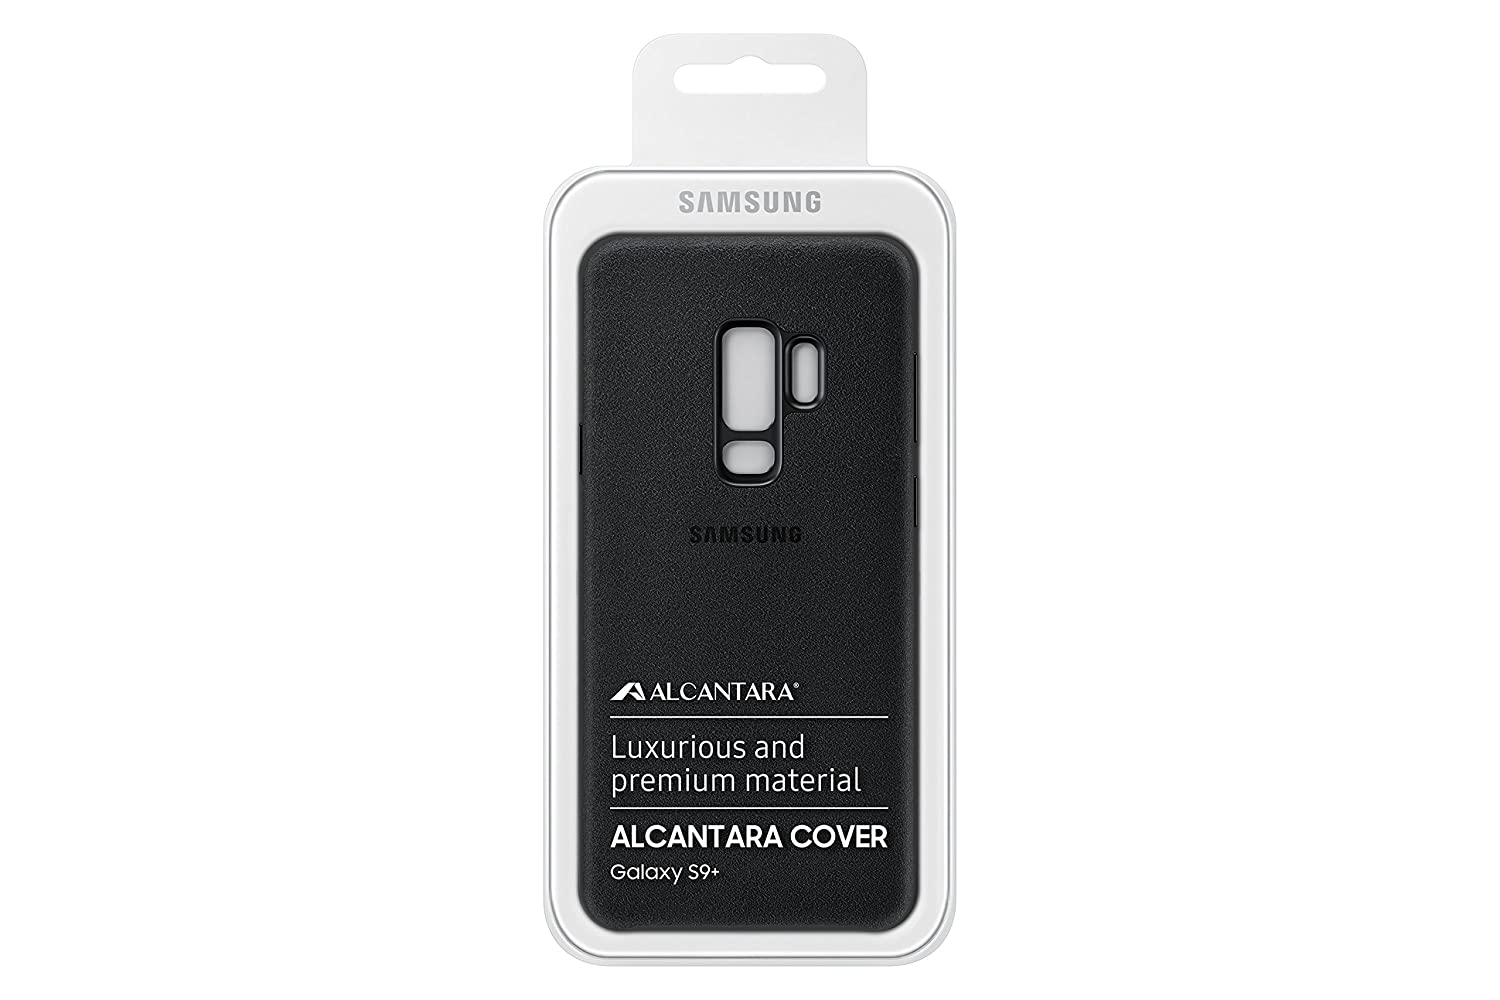 Official OEM Samsung Galaxy S9+ Alcantara Cover (Black)